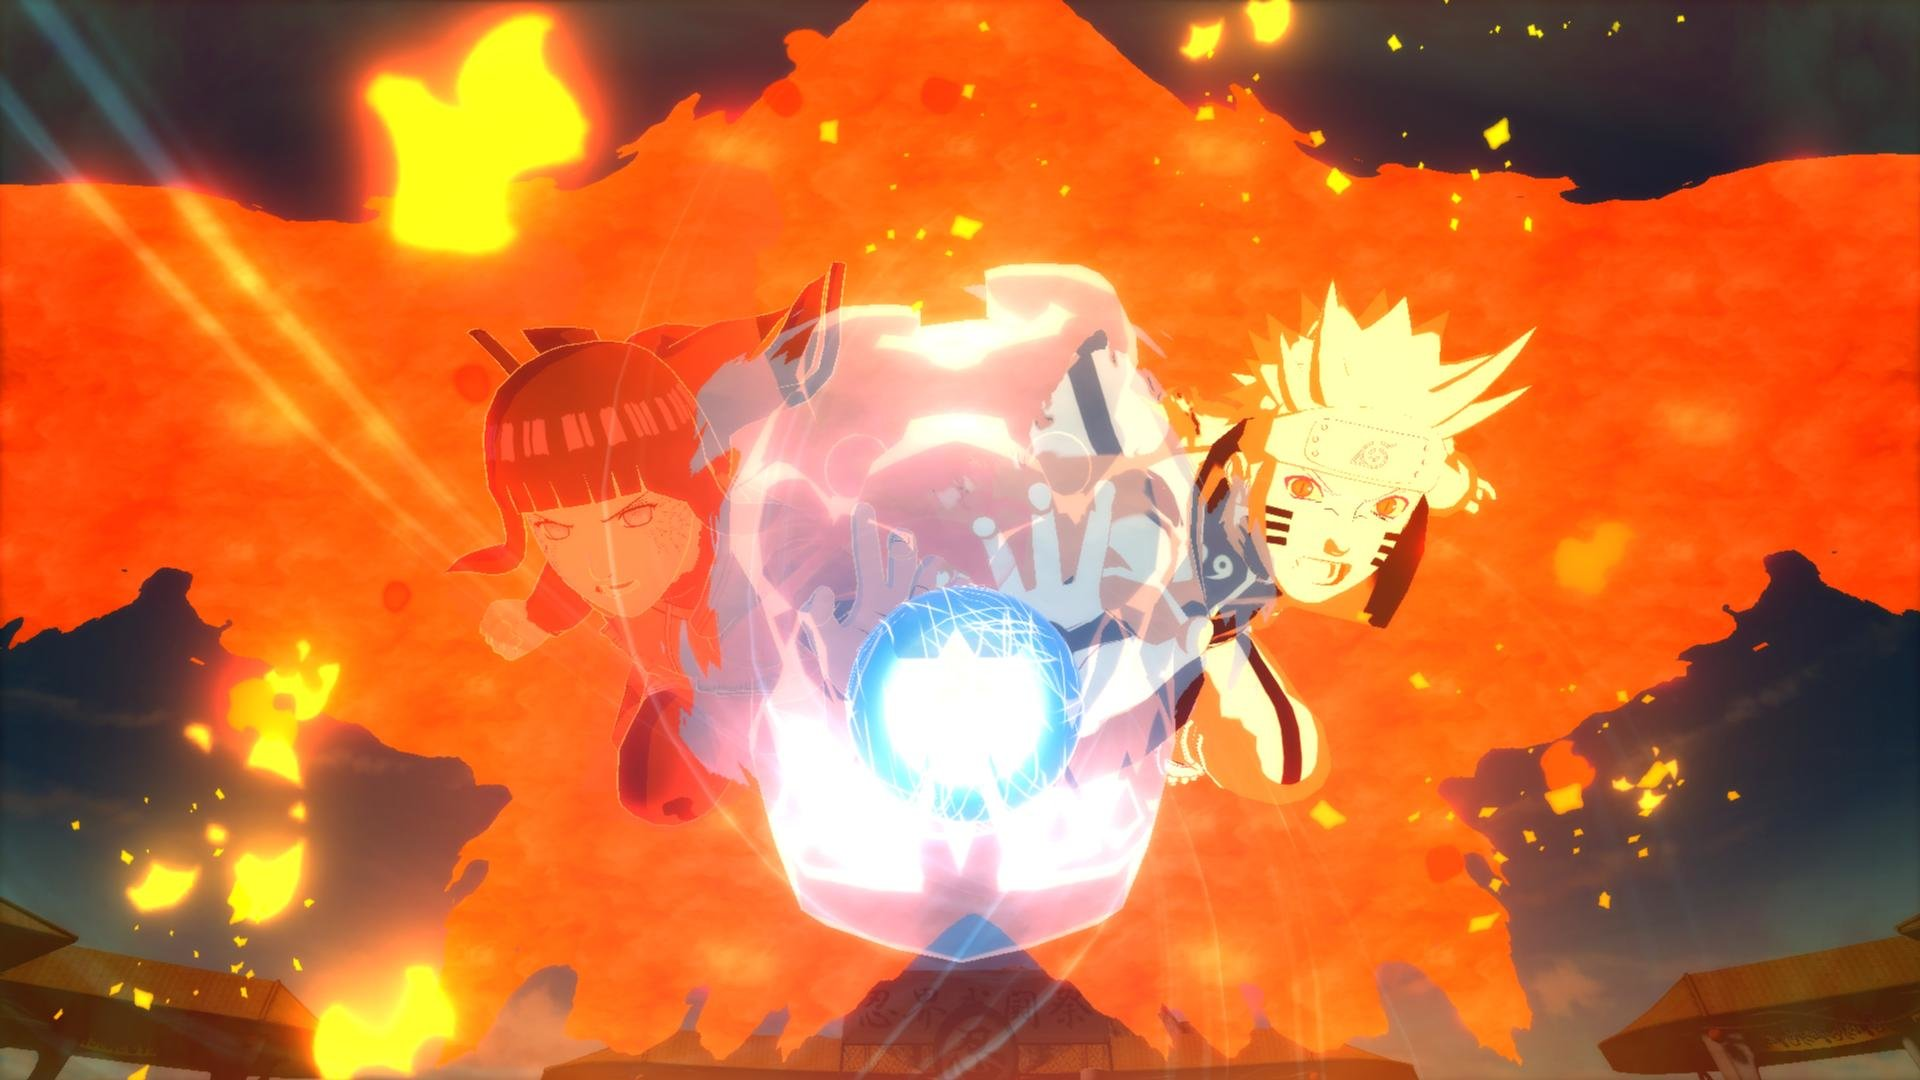 Download hd 1080p Naruto Shippuden: Ultimate Ninja Storm Revolution 5 PC wallpaper ID:422880 for free